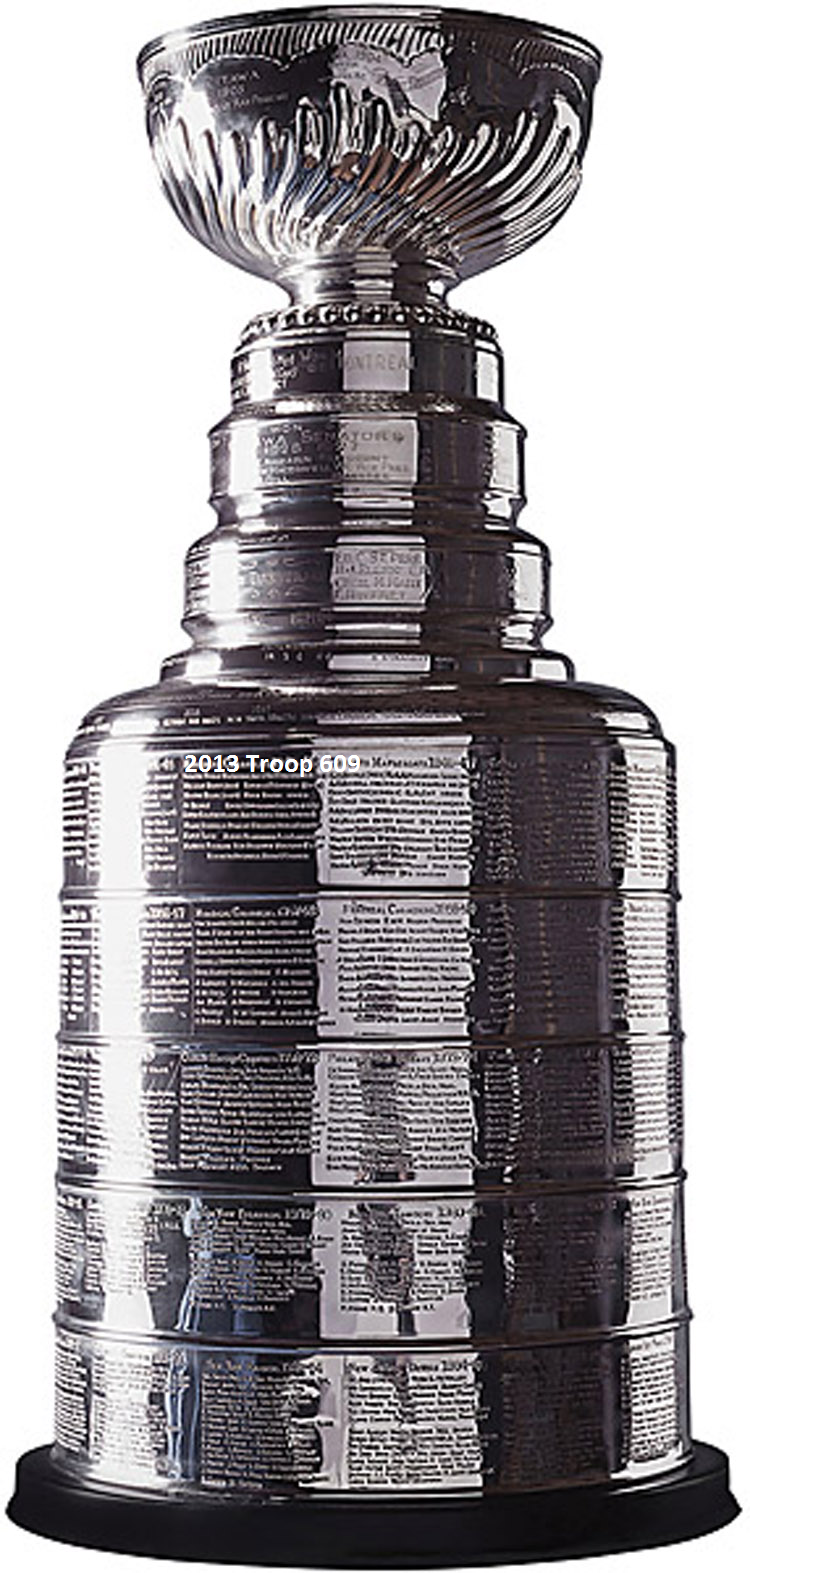 Stanley Cup Clip Art Arrowhead Outline R-Stanley Cup Clip Art Arrowhead Outline Related Keywords Amp Suggestio-6